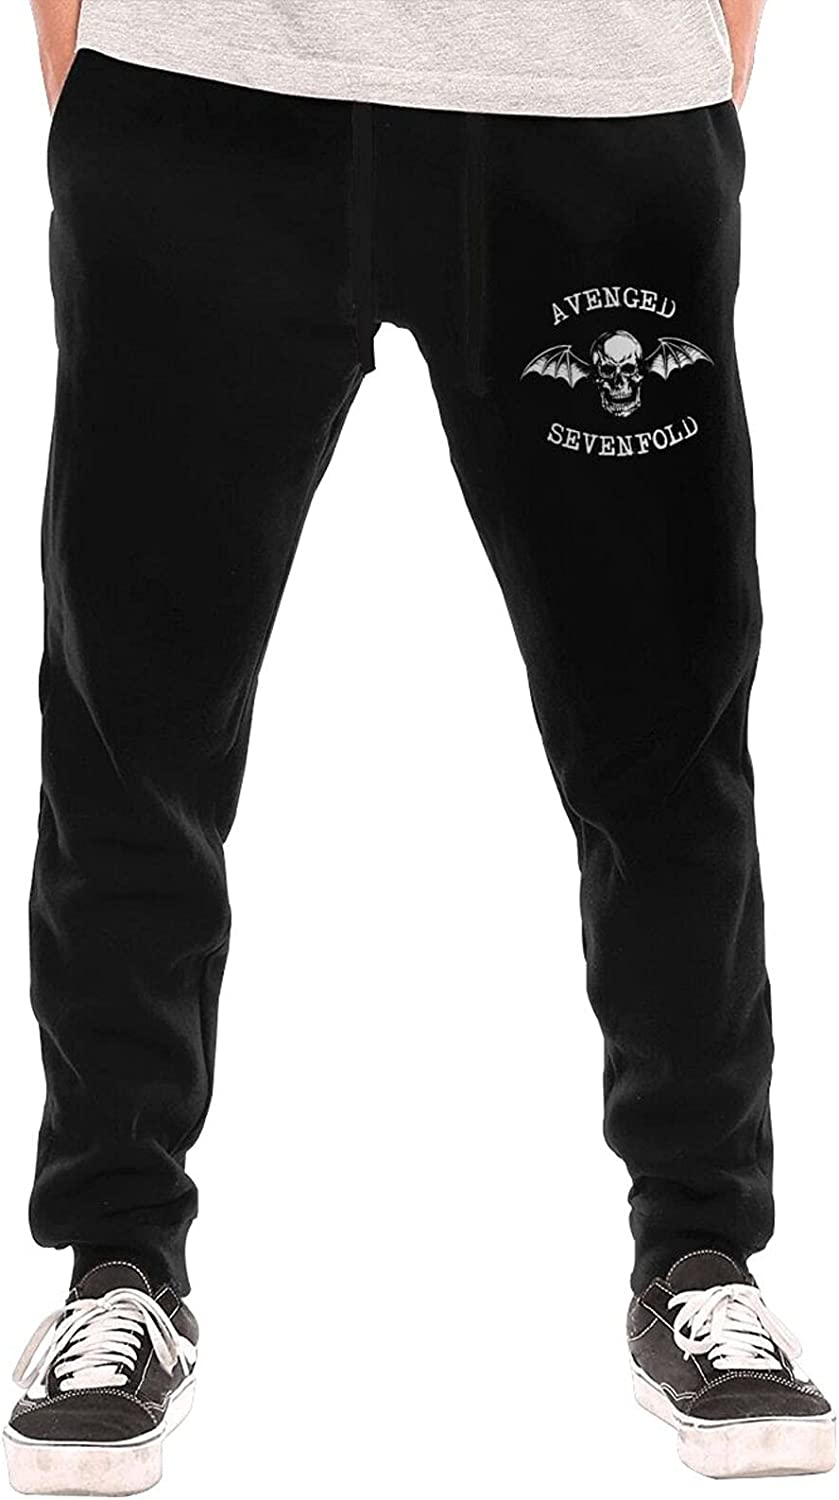 Hiacpy Avenged Free shipping anywhere in the nation Sevenfold Men's Long Fas Popular products Casual Pants Guard